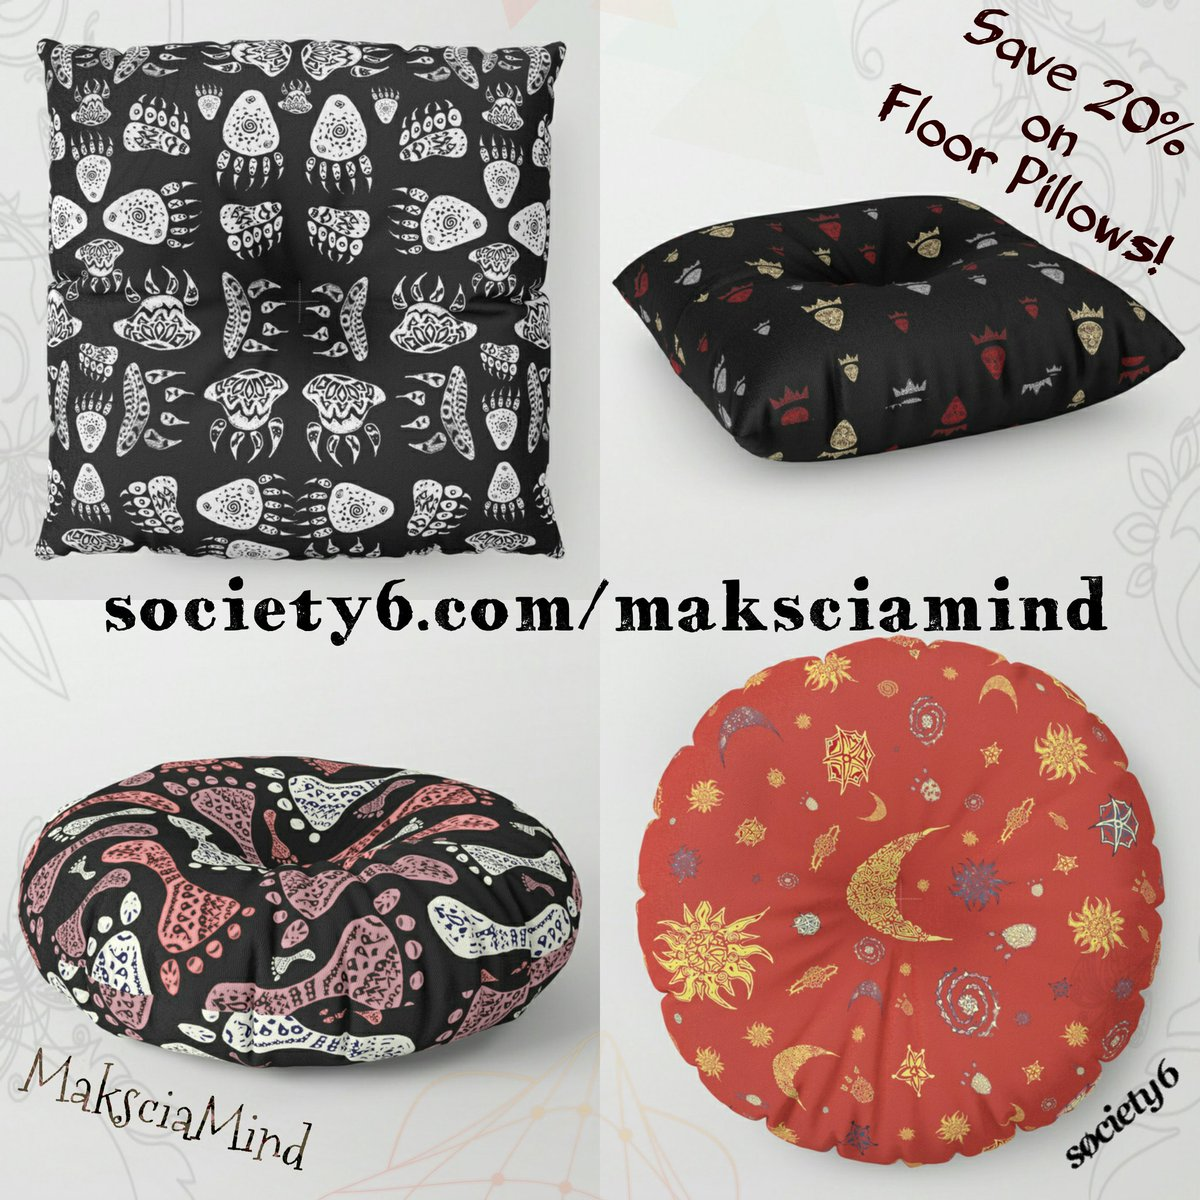 Save 20% on Floor Pillows - Decor your Home with #maksciamind -》 https:// society6.com/maksciamind/fl oor-pillows &nbsp; …   @society6 @Society6max #decorideas #pattern #prints <br>http://pic.twitter.com/TrAZo3MZfs